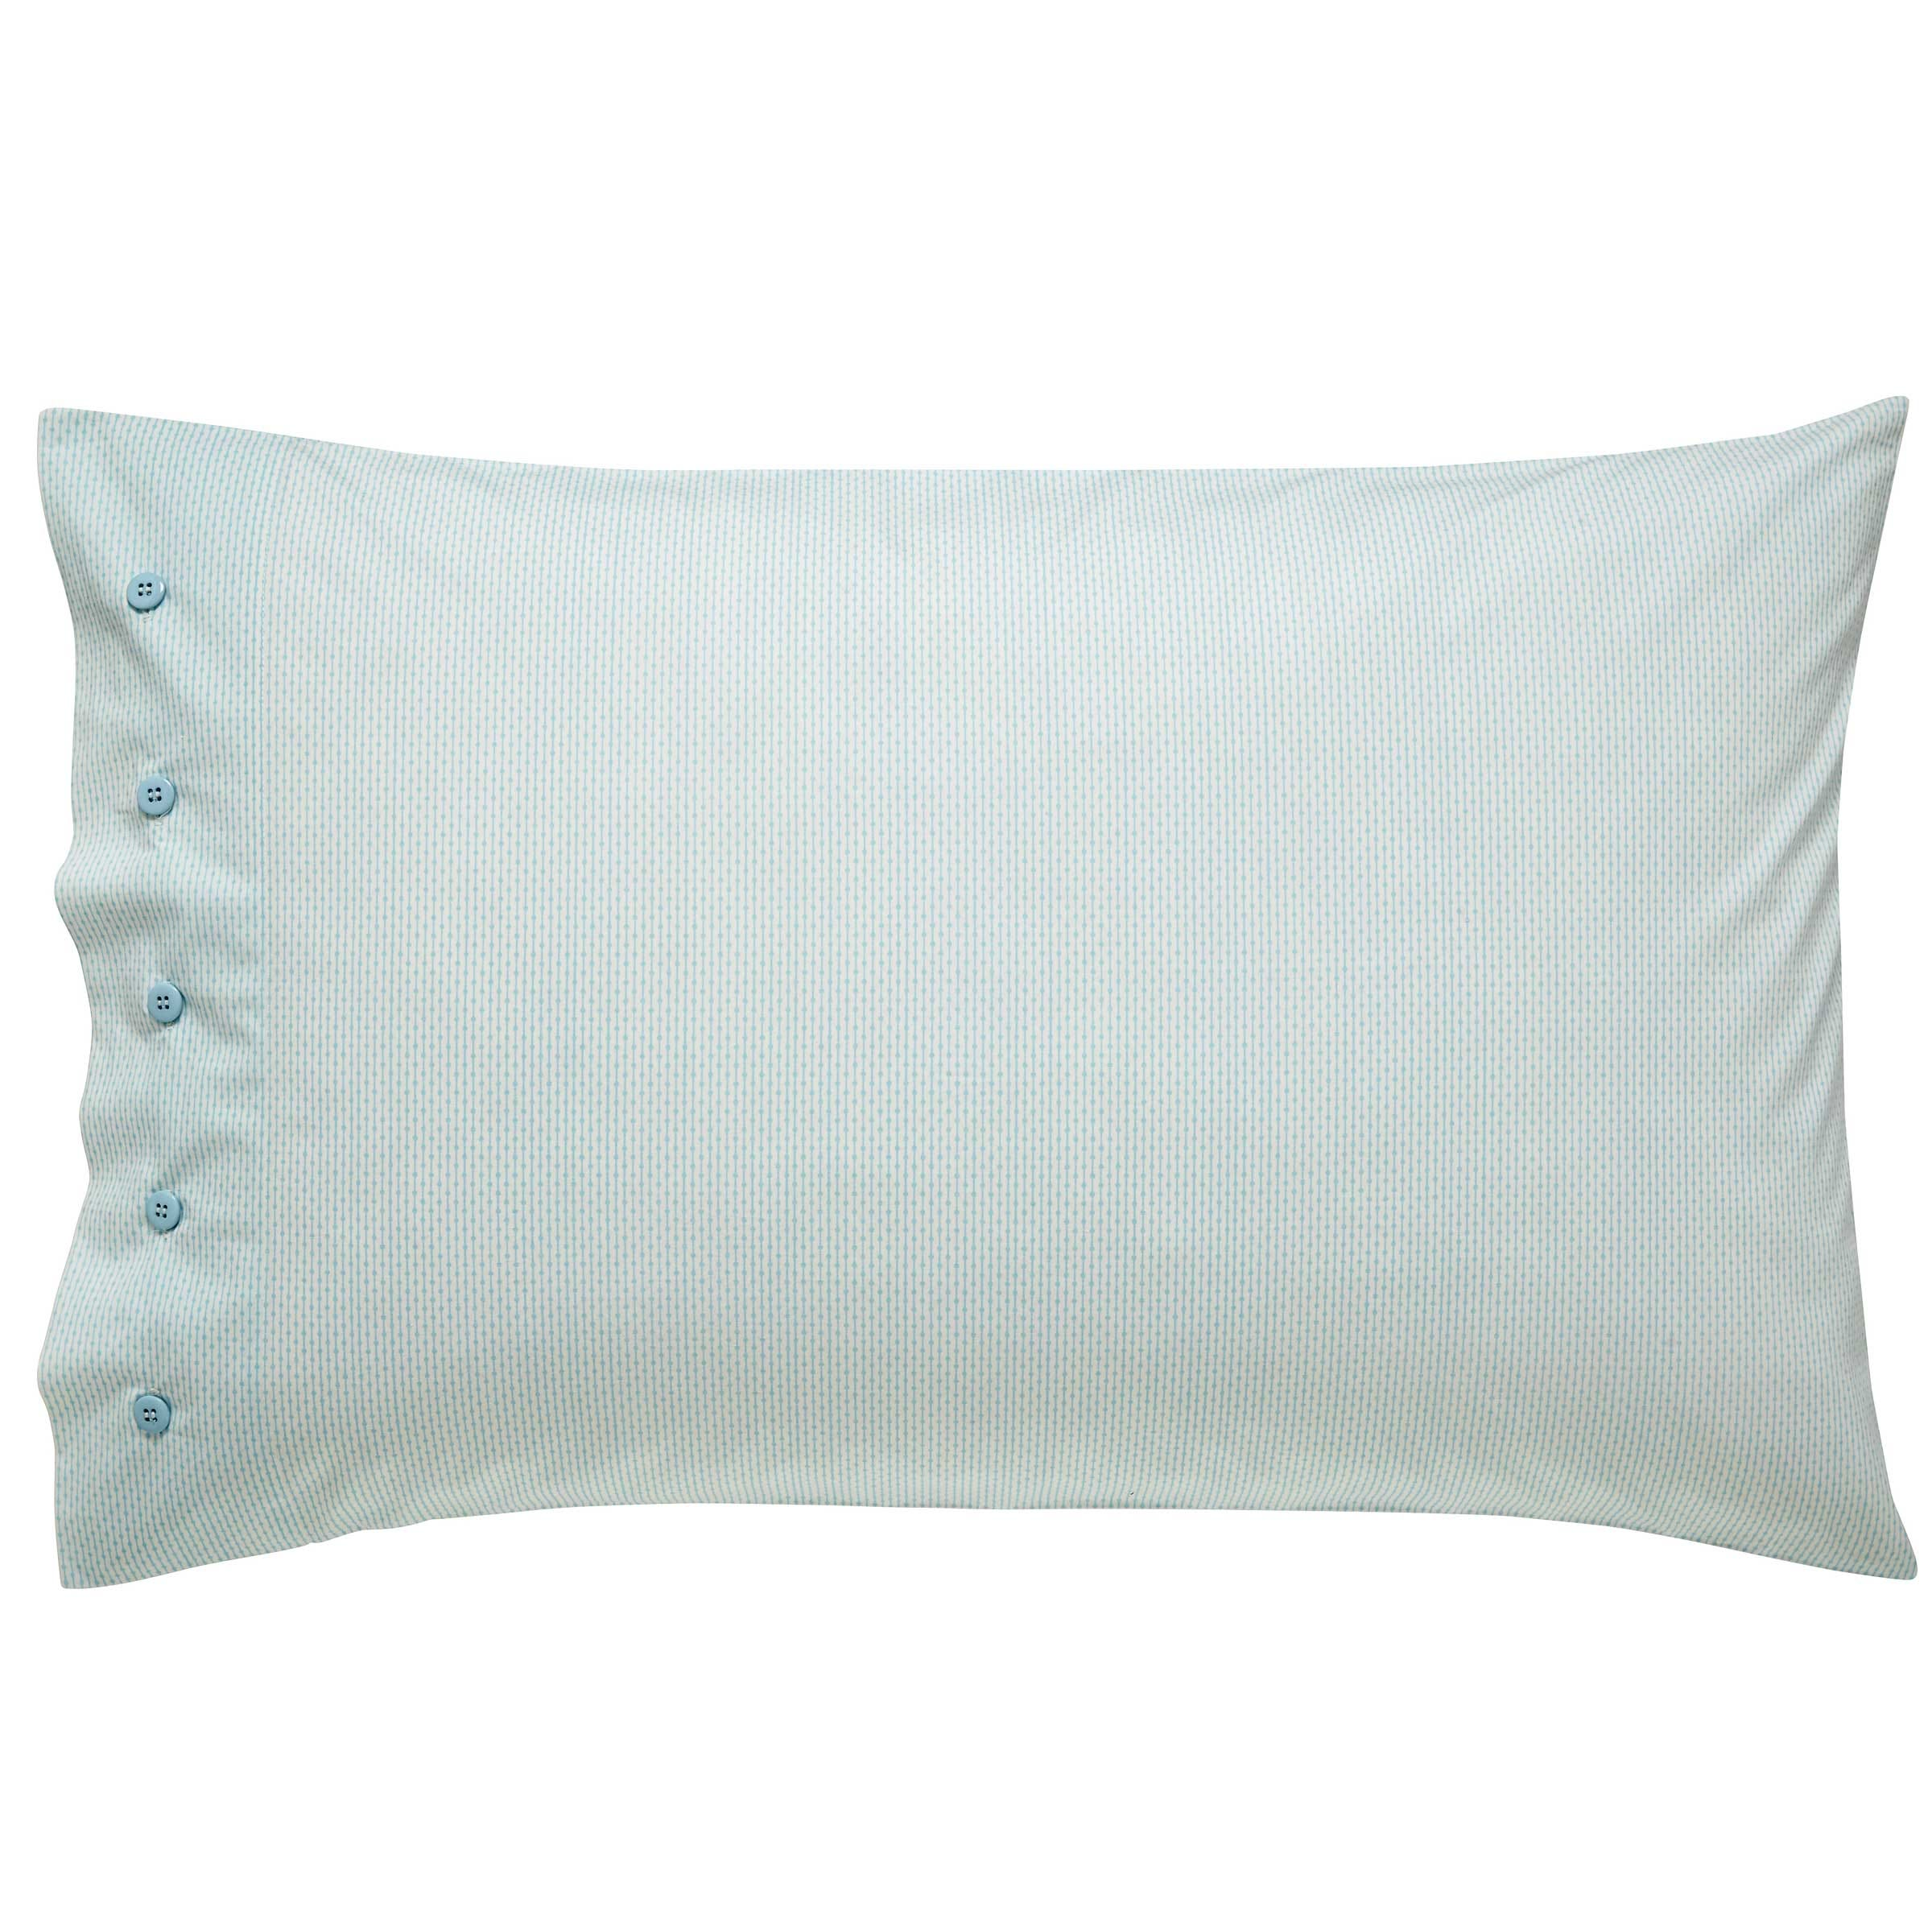 Bedeck 1951 Bedding, Loya Housewife Pillowcase (Mint)